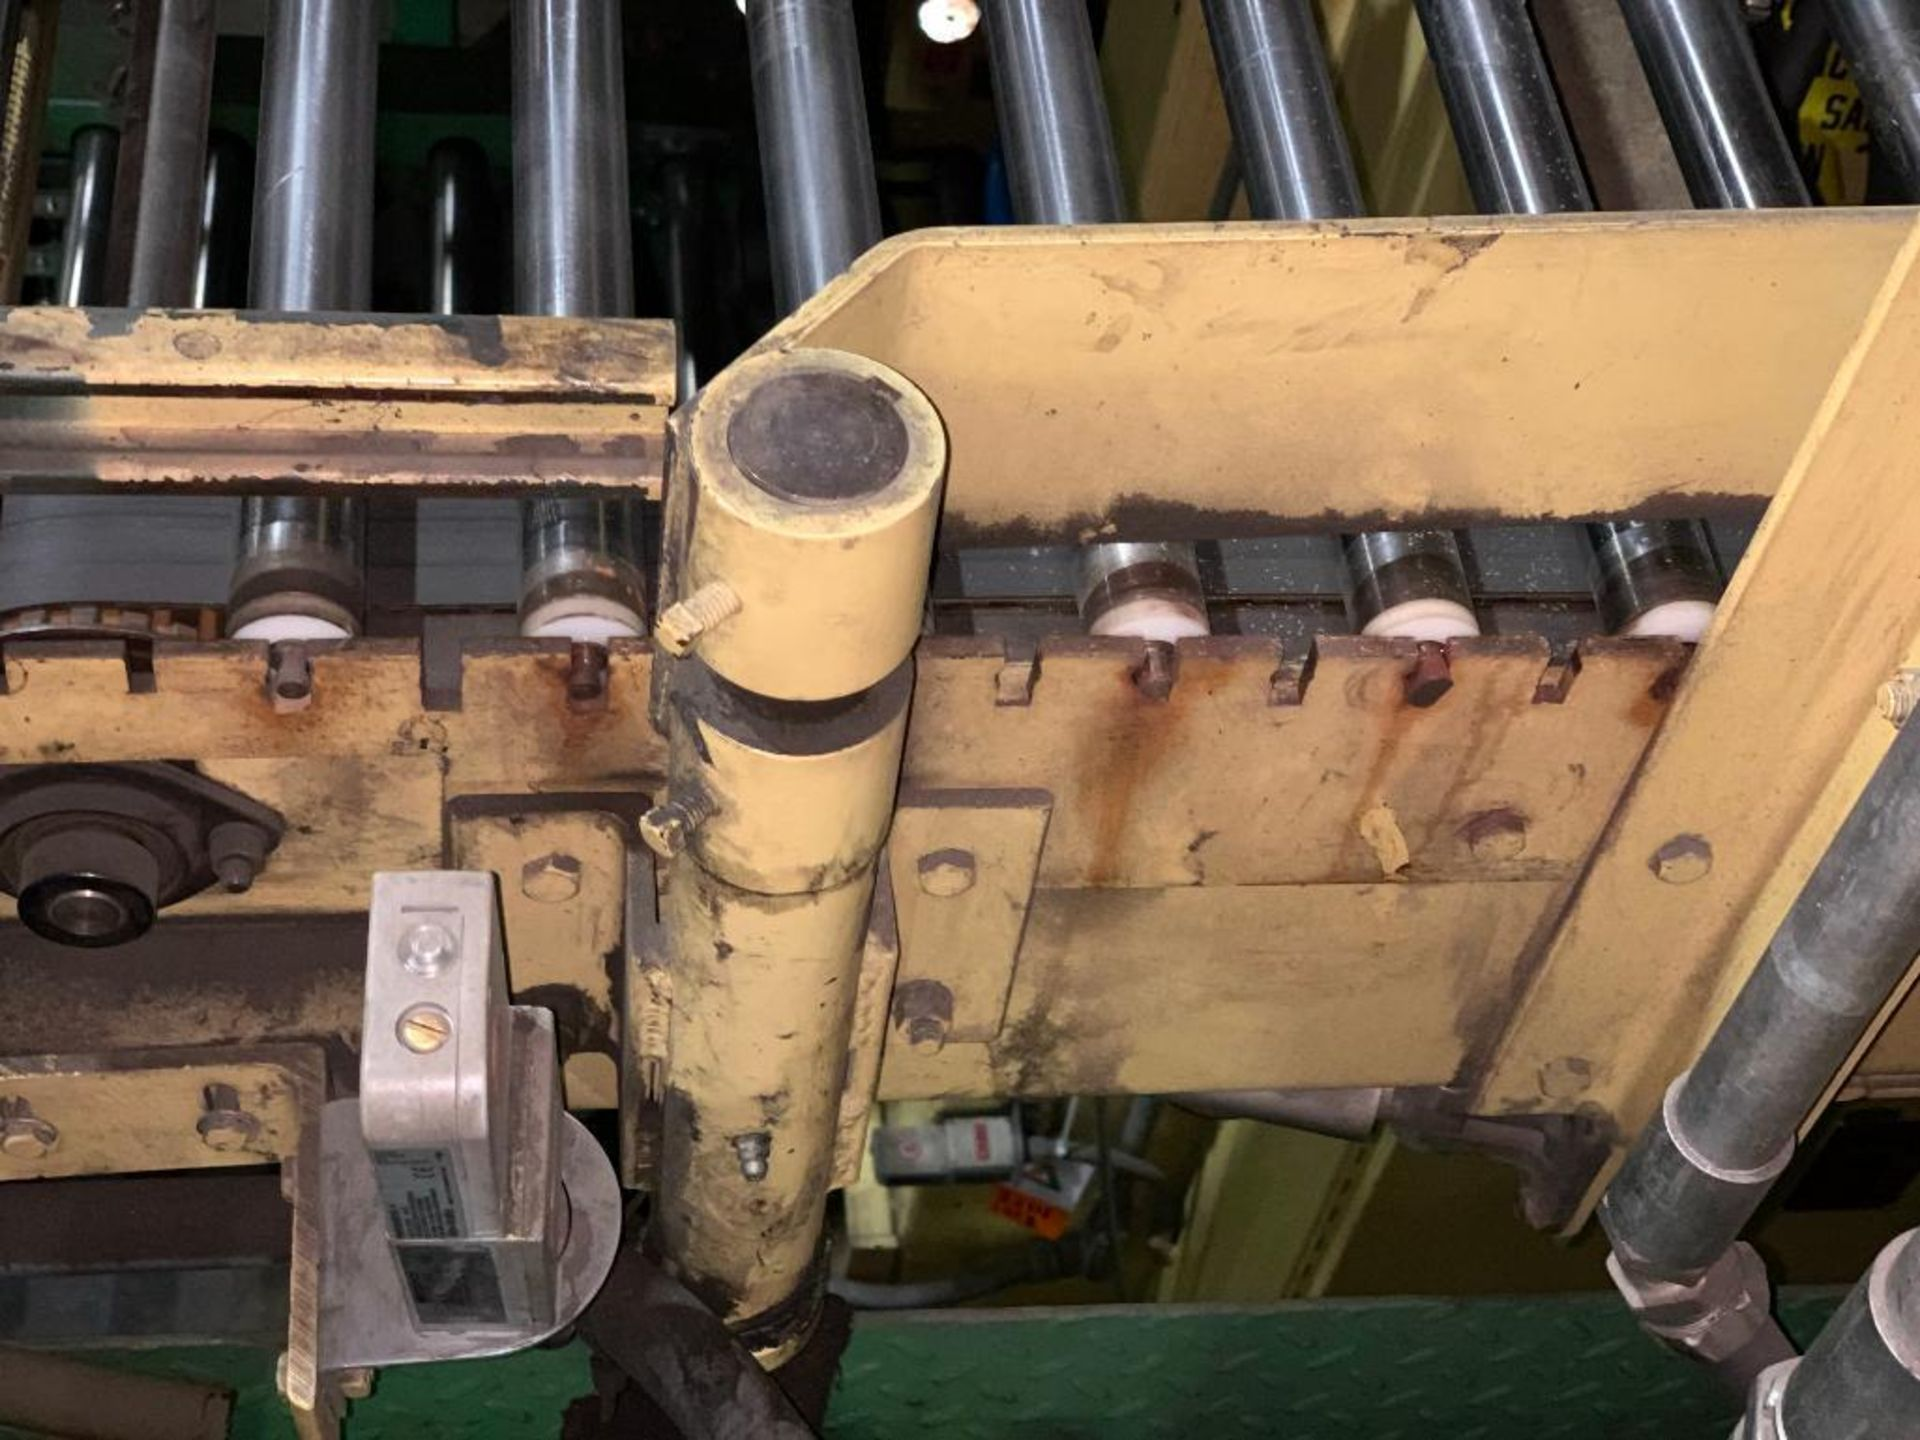 1992 Currie top to bottom palletizer, machine number LSP-5-1175 - Image 50 of 54